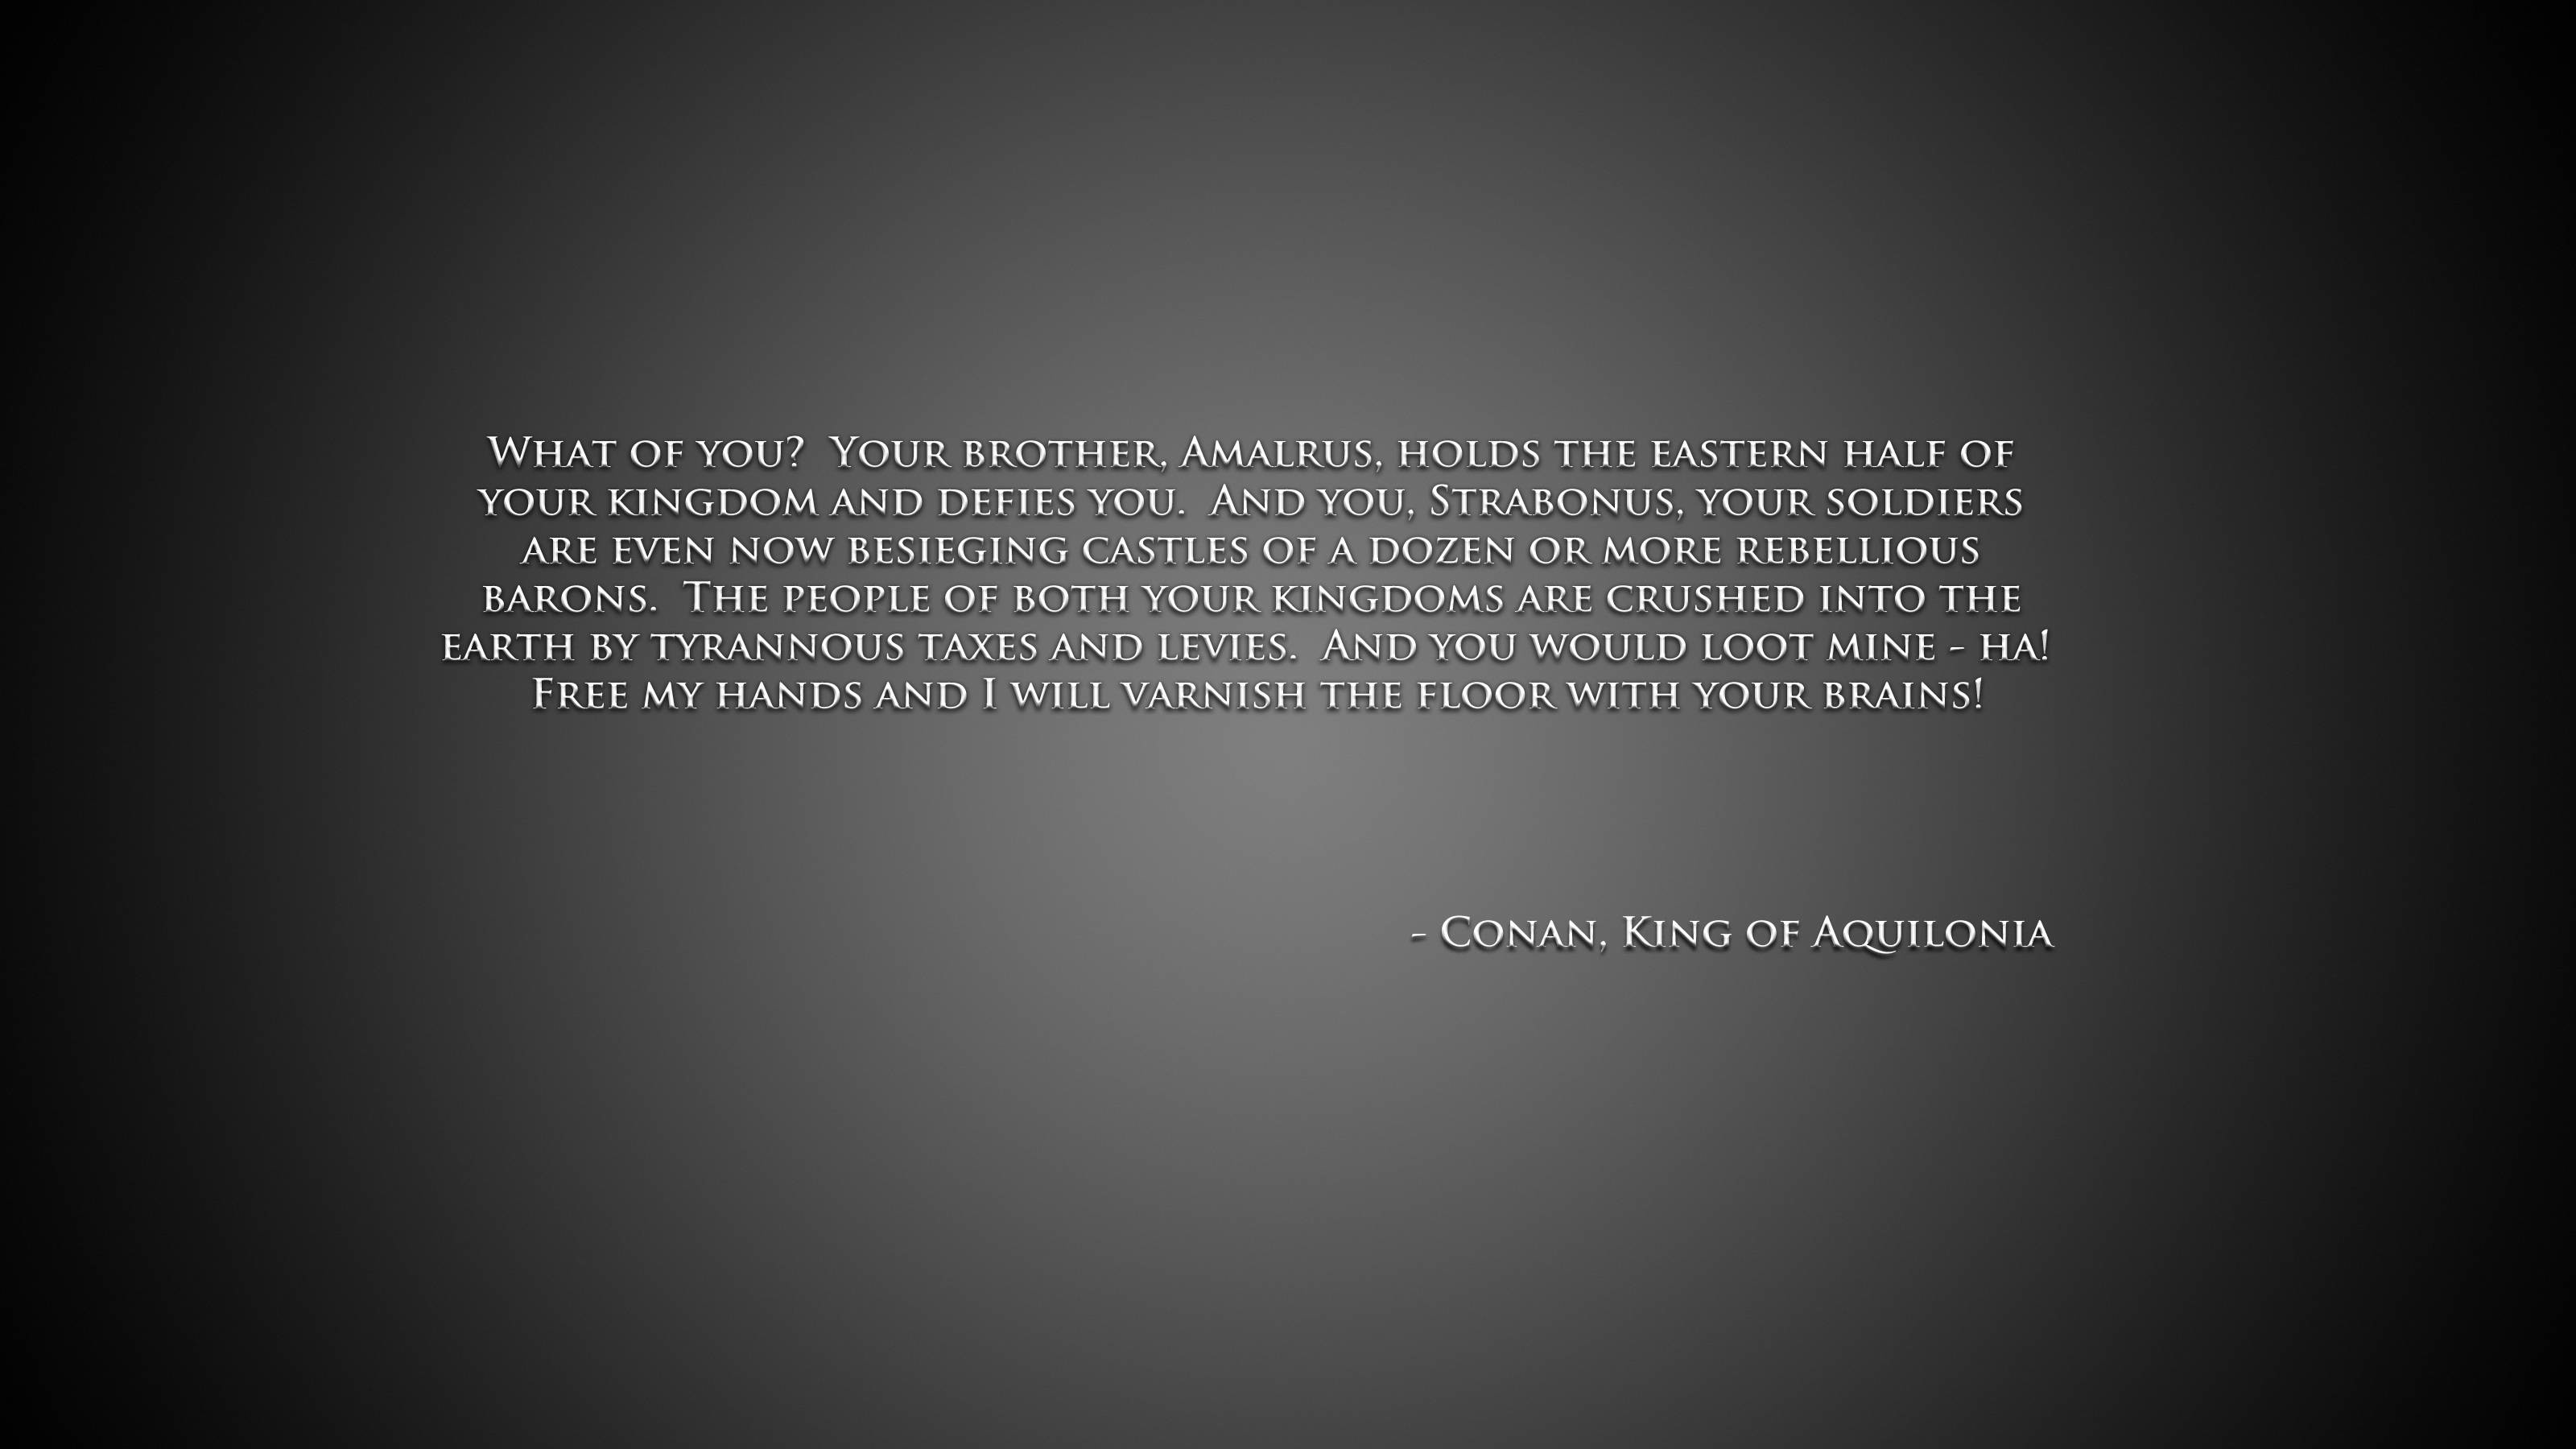 906392 desktop backgrounds with quotes 3200x1800 windows 7